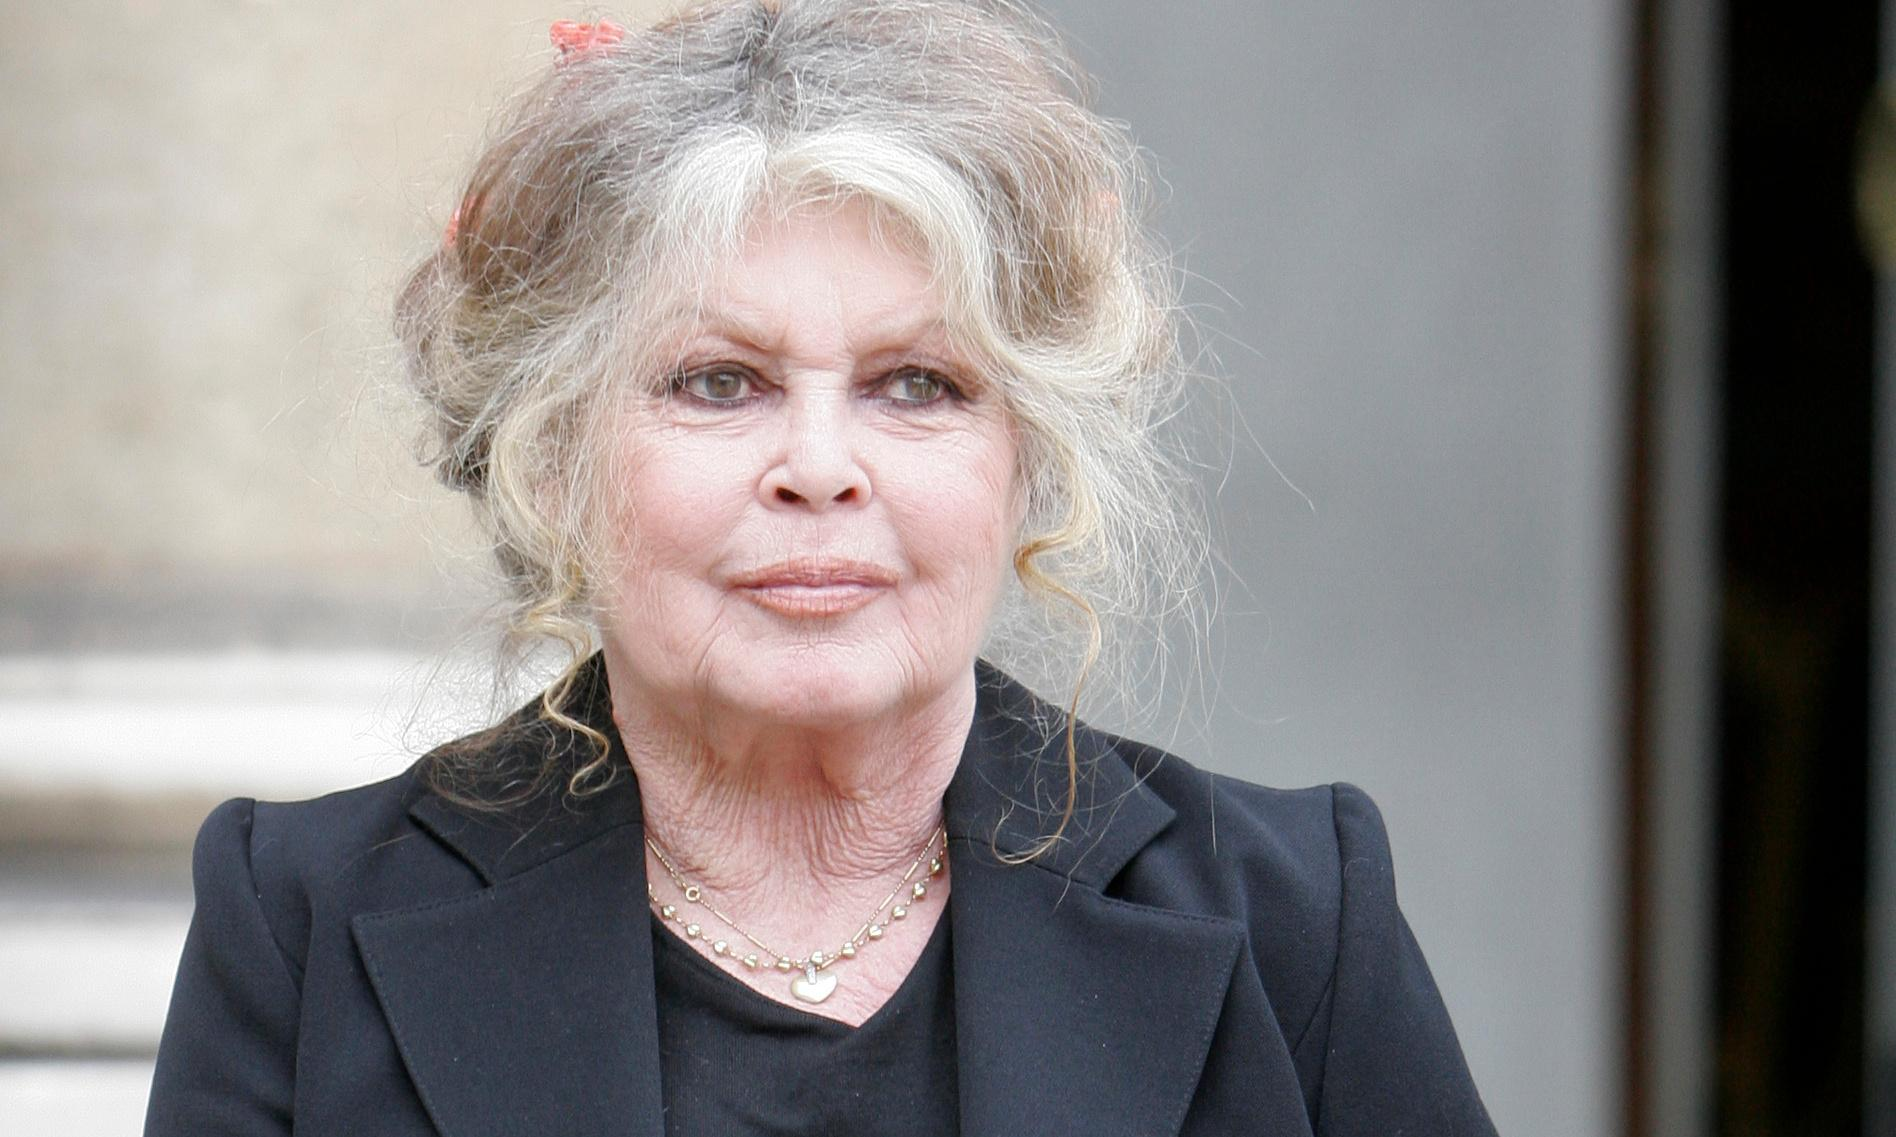 'I know what it feels like to be hunted': Brigitte Bardot on life in the spotlight